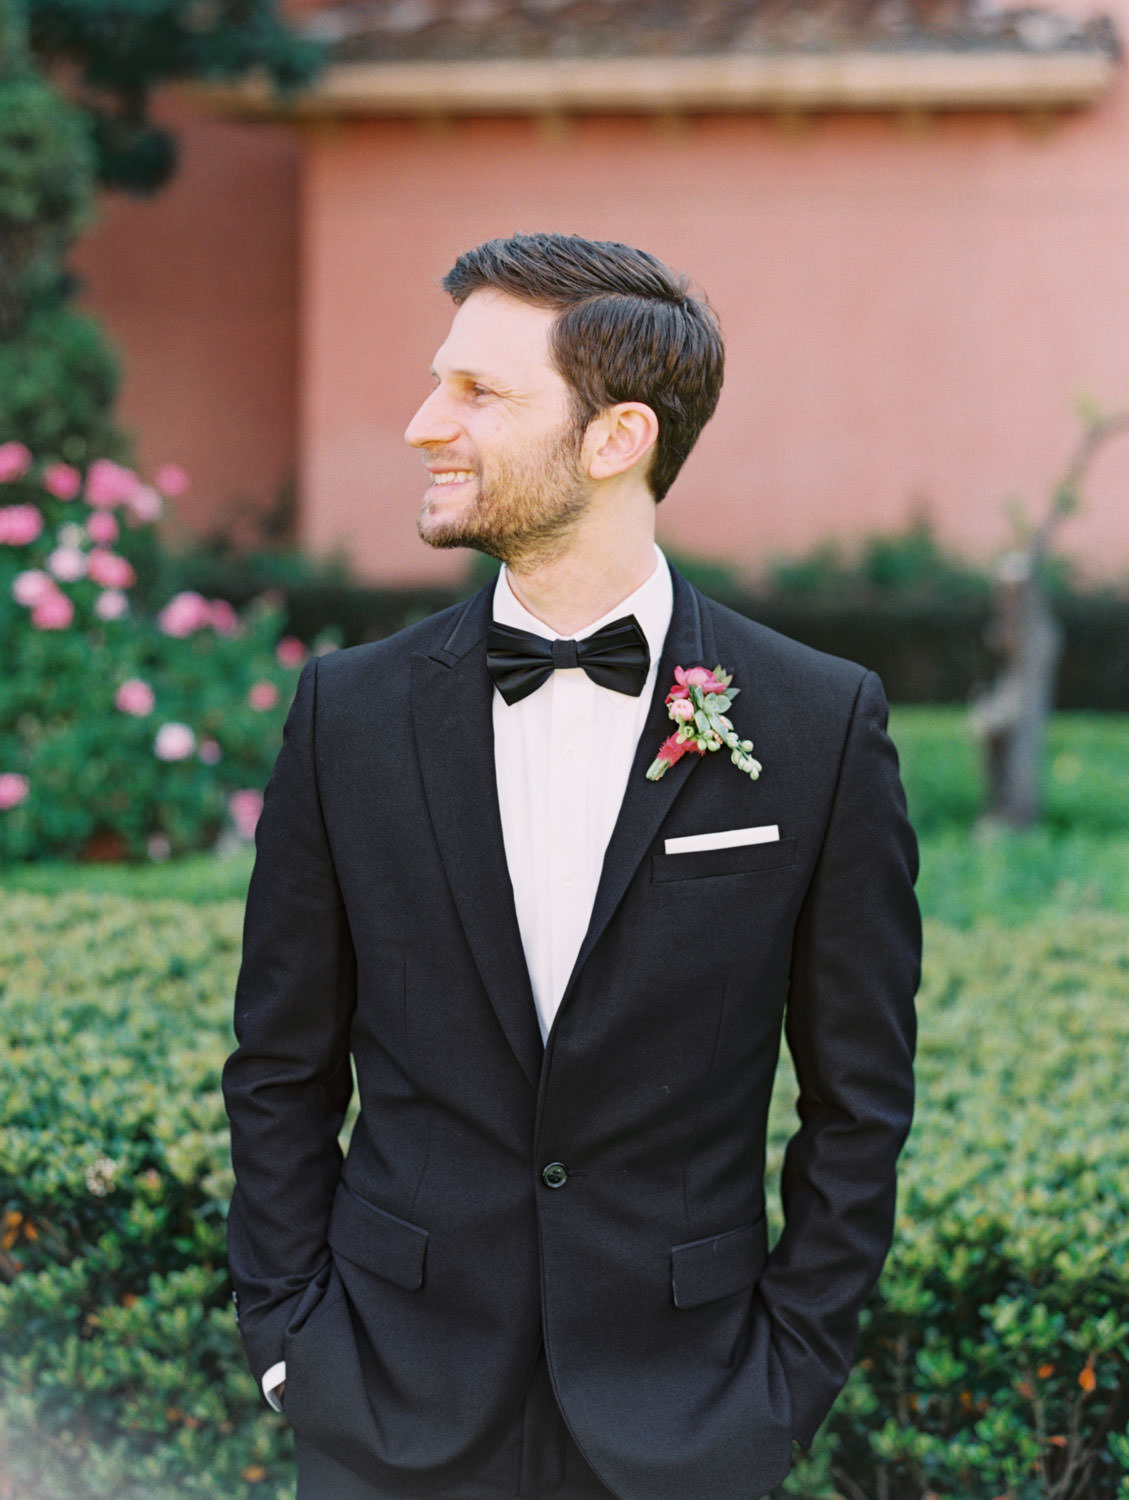 Groom in a black tuxedo with a pink and green boutonniere with a tiny succulent. Fairmont Grand del Mar wedding published on Martha Stewart Weddings